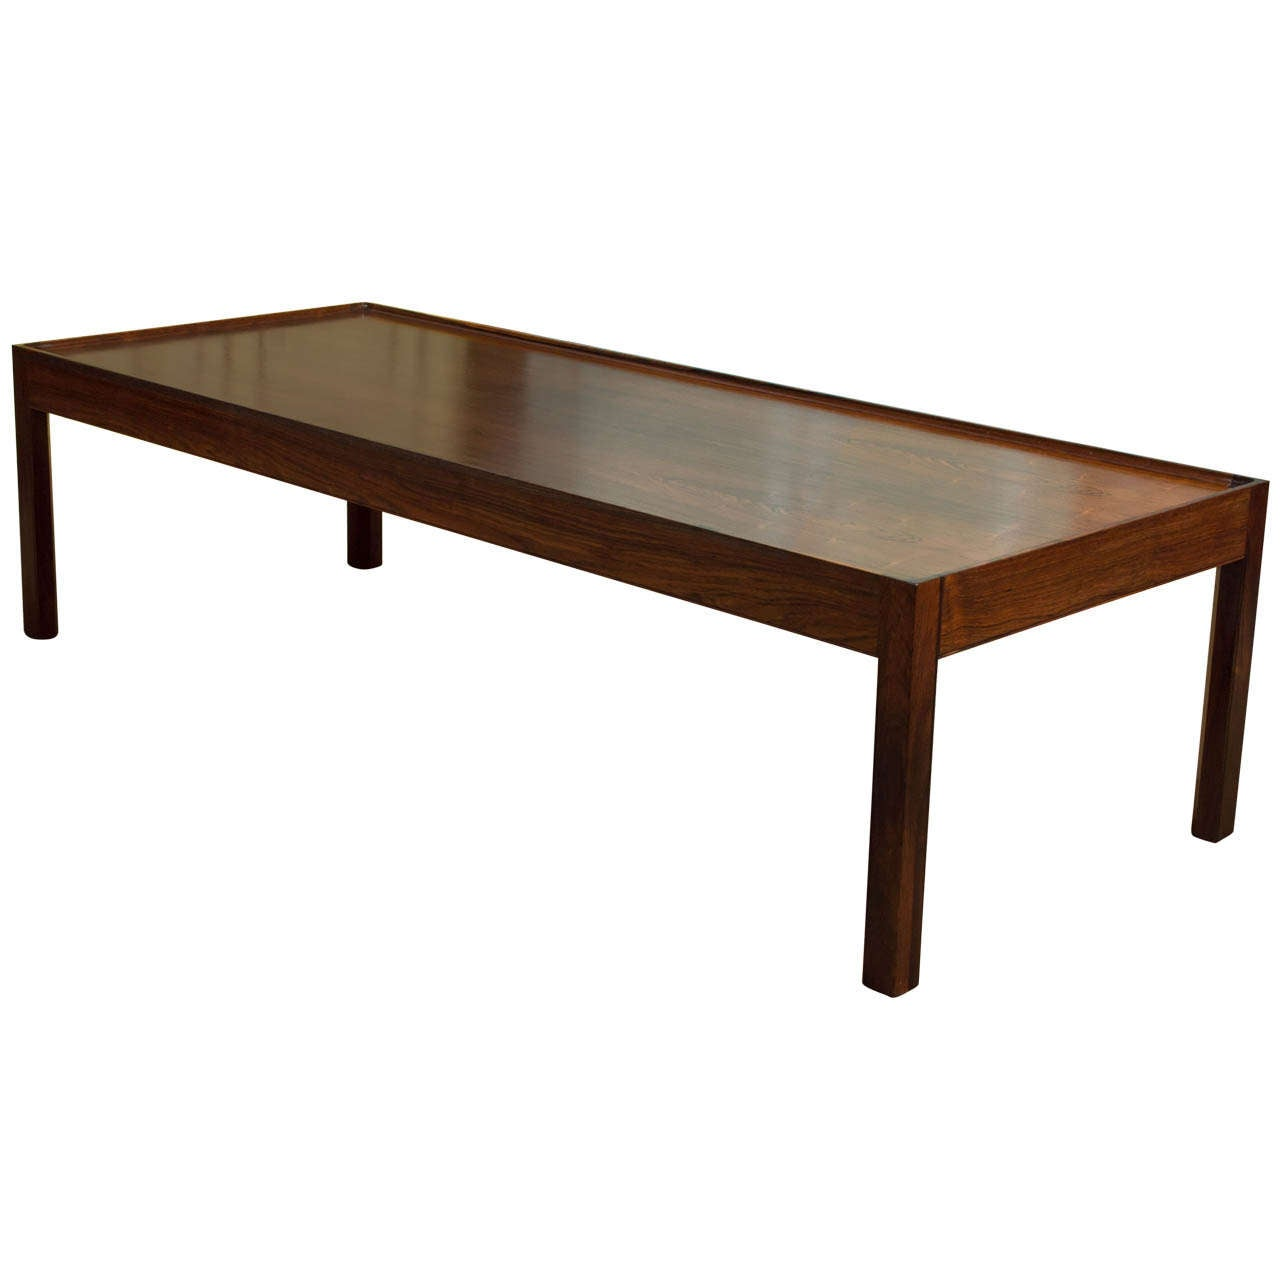 Classic danish modern rosewood coffee table by bovirke for Modern classic table